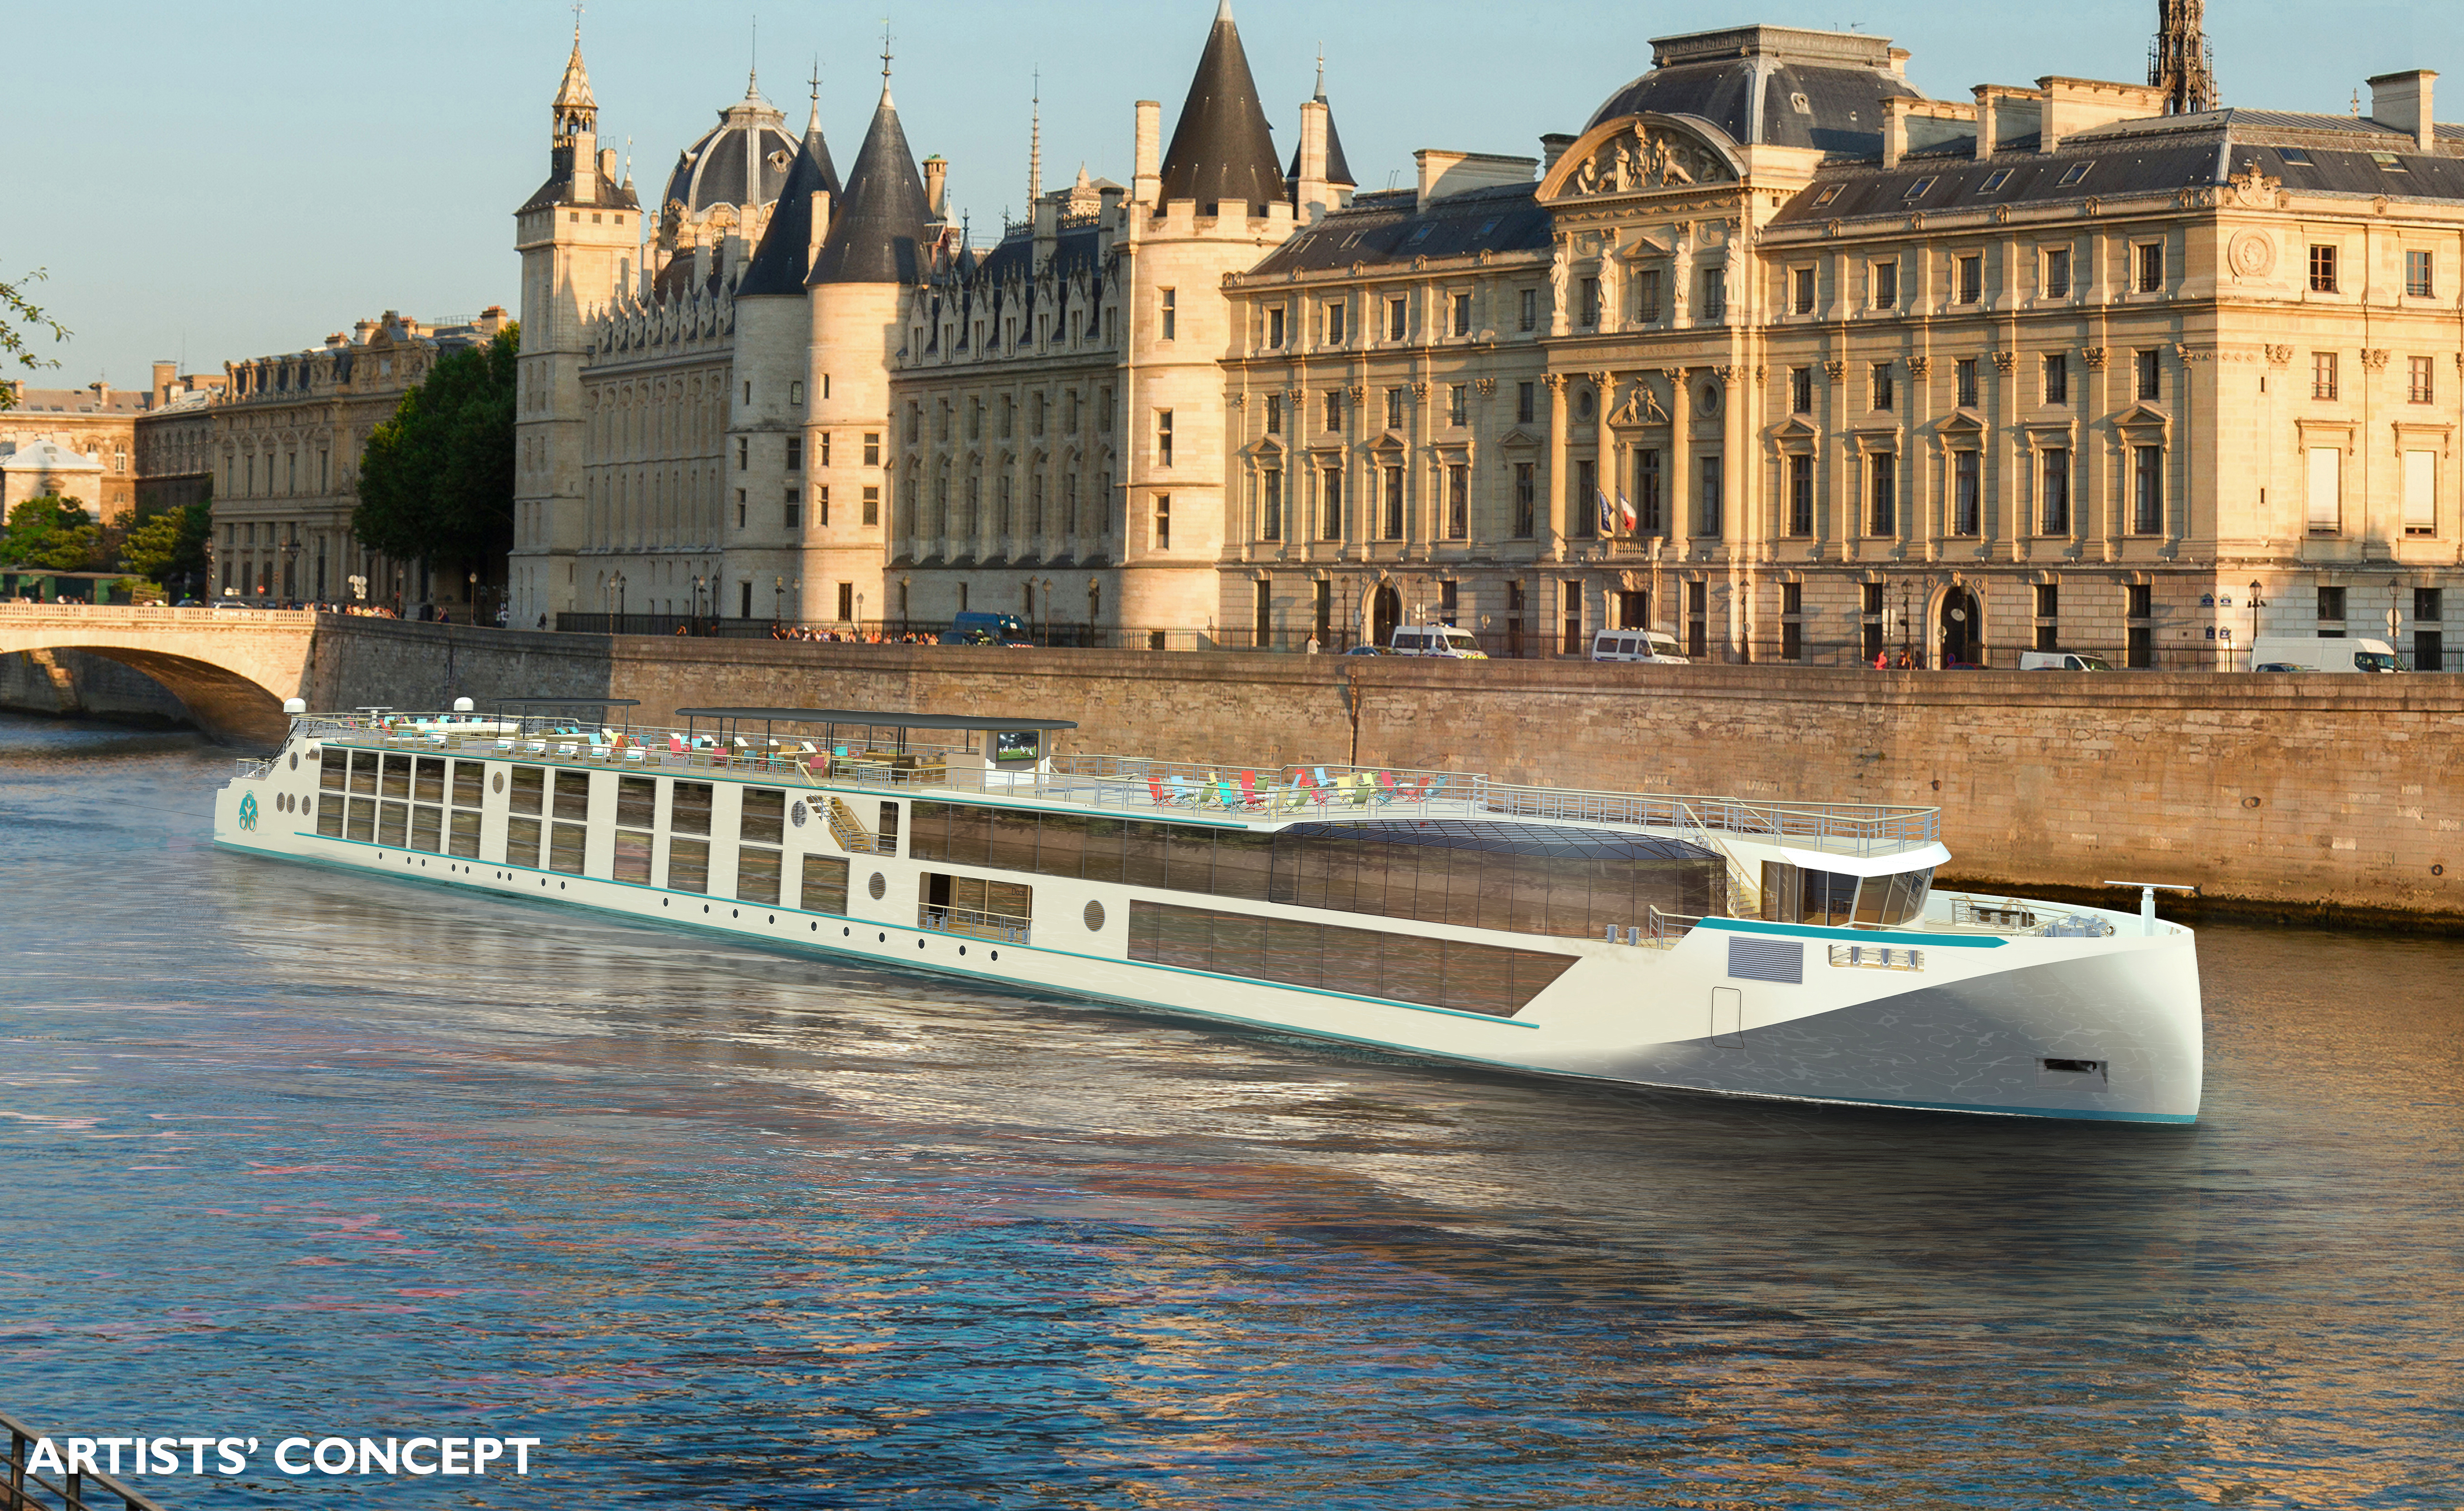 Crystal River Cruises Unveils Details And Design Concepts Of Four New Build River Yachts Debuting In 2017 Business Wire